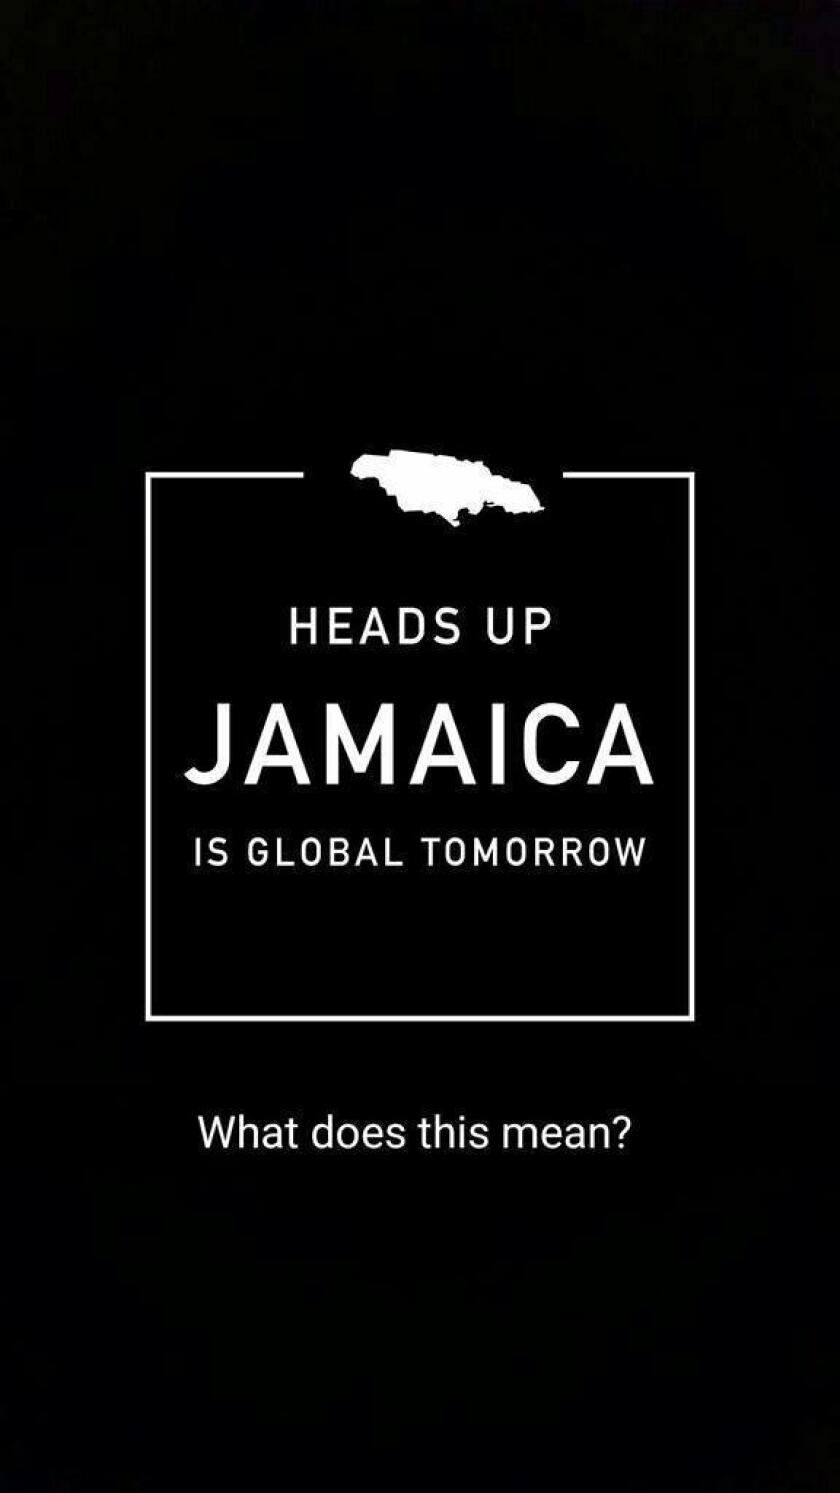 Snapchat announced via its app that Jamaica would be featured on Monday, September 14th.